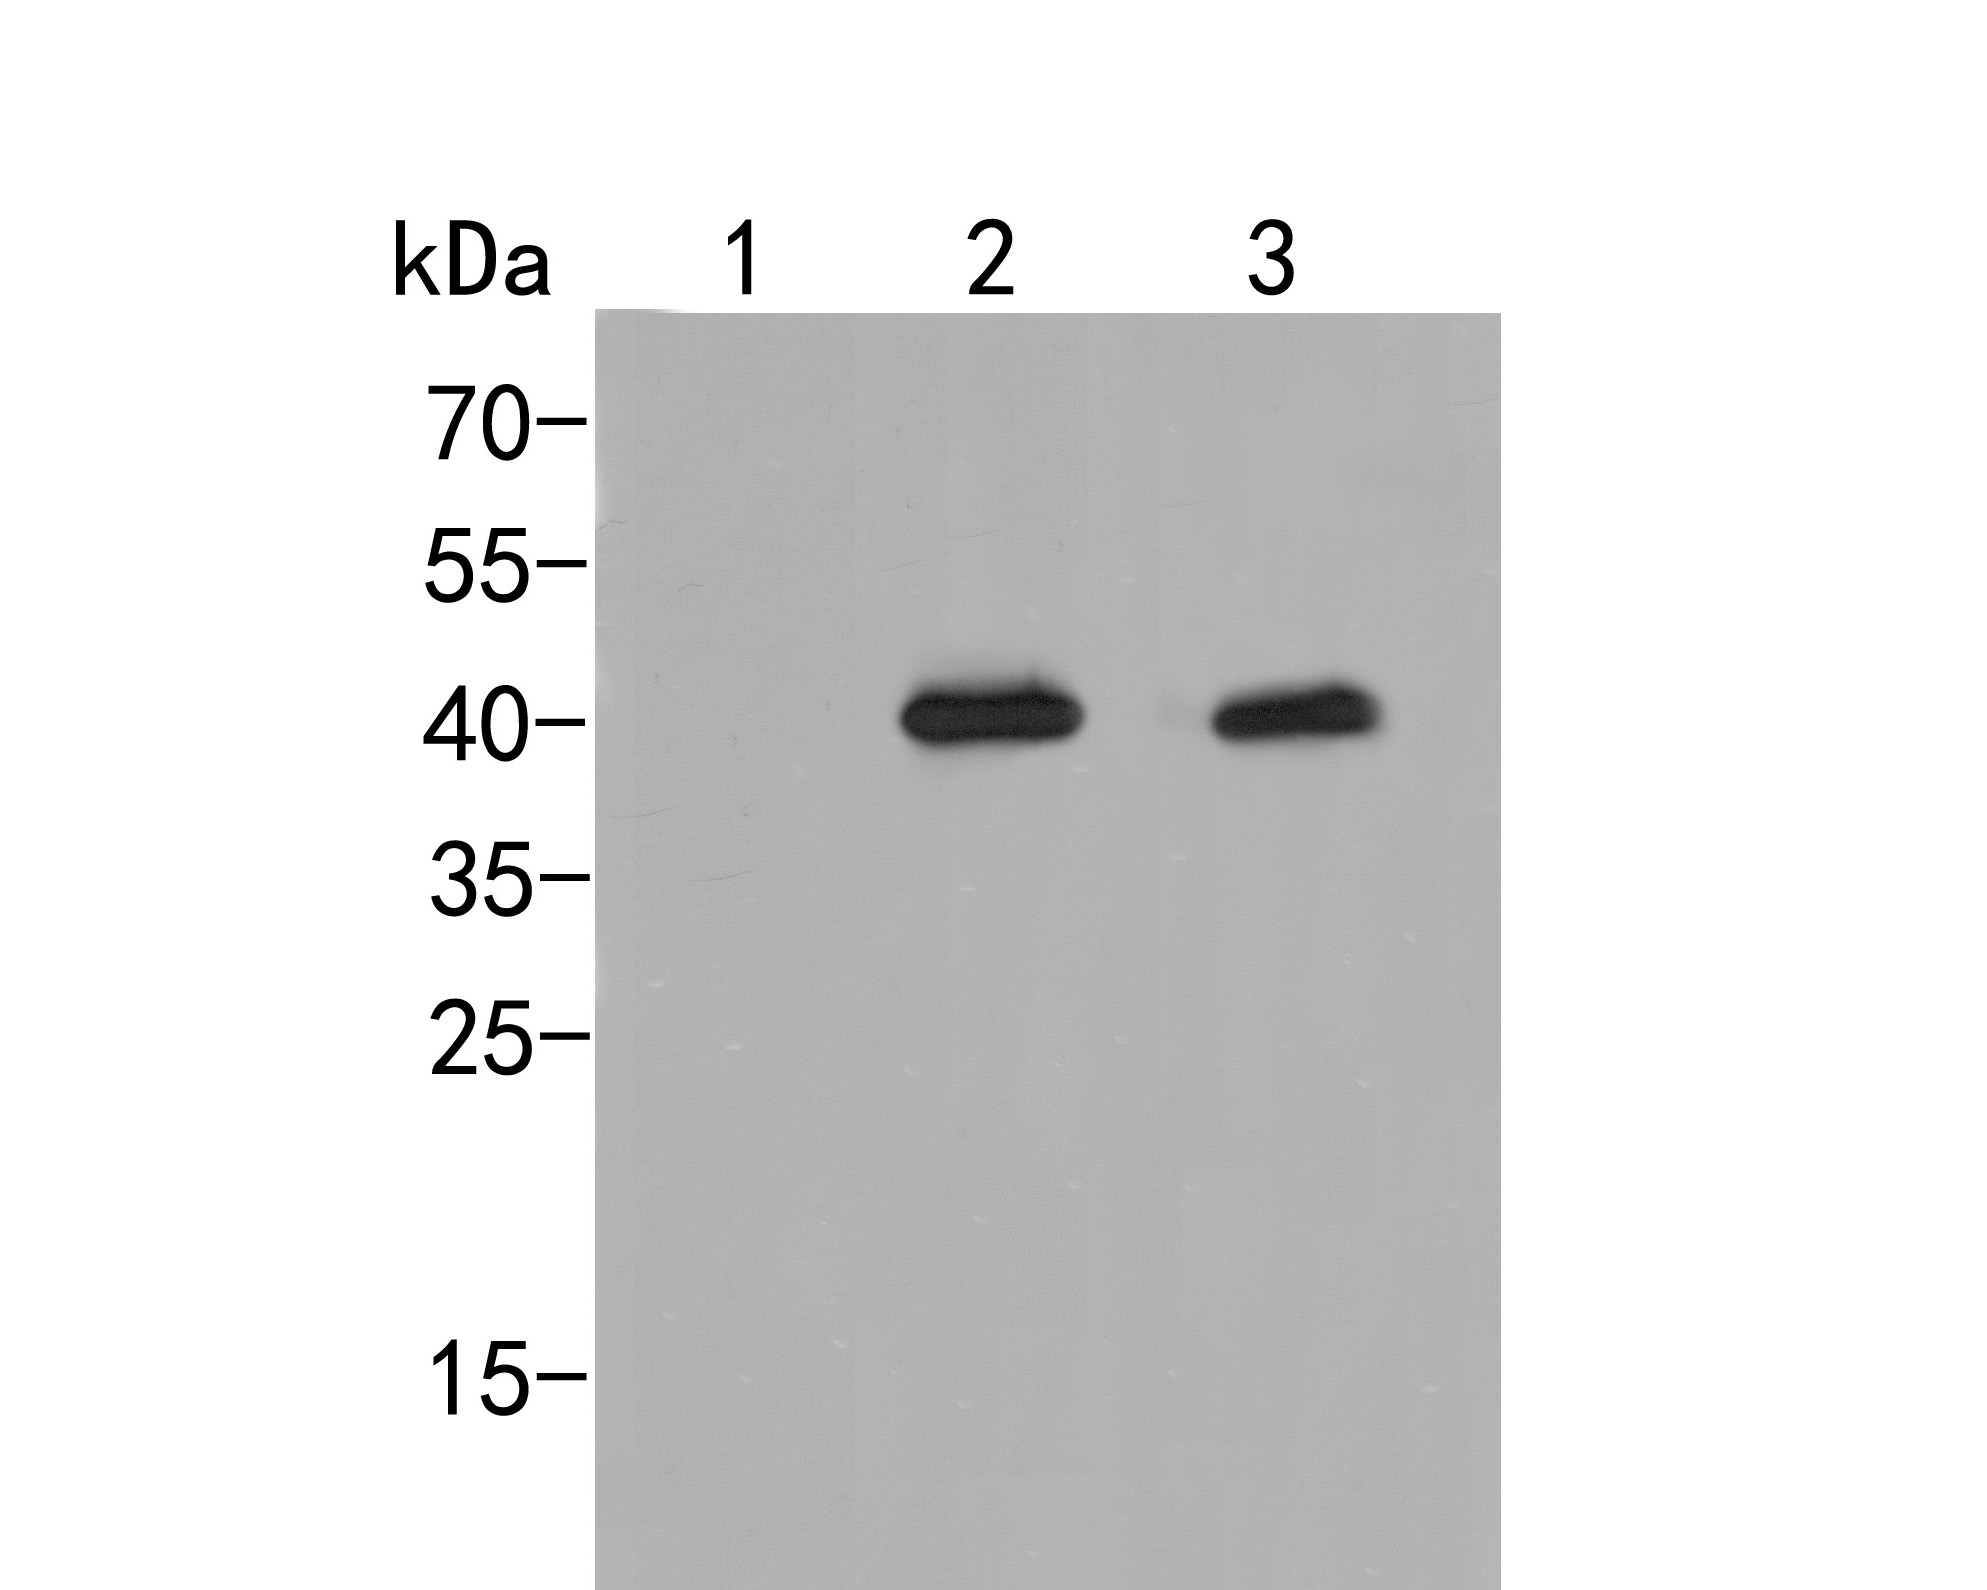 Western blot analysis of P38  (Phospho Thr180 + Tyr182) on different lysates. Proteins were transferred to a PVDF membrane and blocked with 5% BSA in PBS for 1 hour at room temperature. The primary antibody (ER2001-52, 1/1000) was used in 5% BSA at room temperature for 2 hours. Goat Anti-Rabbit IgG - HRP Secondary Antibody (HA1001) at 1:5,000 dilution was used for 1 hour at room temperature.<br /> Positive control: <br /> Lane 1: Hela cell lysate, untreated <br /> Lane 2: Hela cell lysate, treated with UV for 40 minutes<br /> Lane 3: Hela cell lysate, treated with anisomycin at 250 ng/ml for 30 minutes